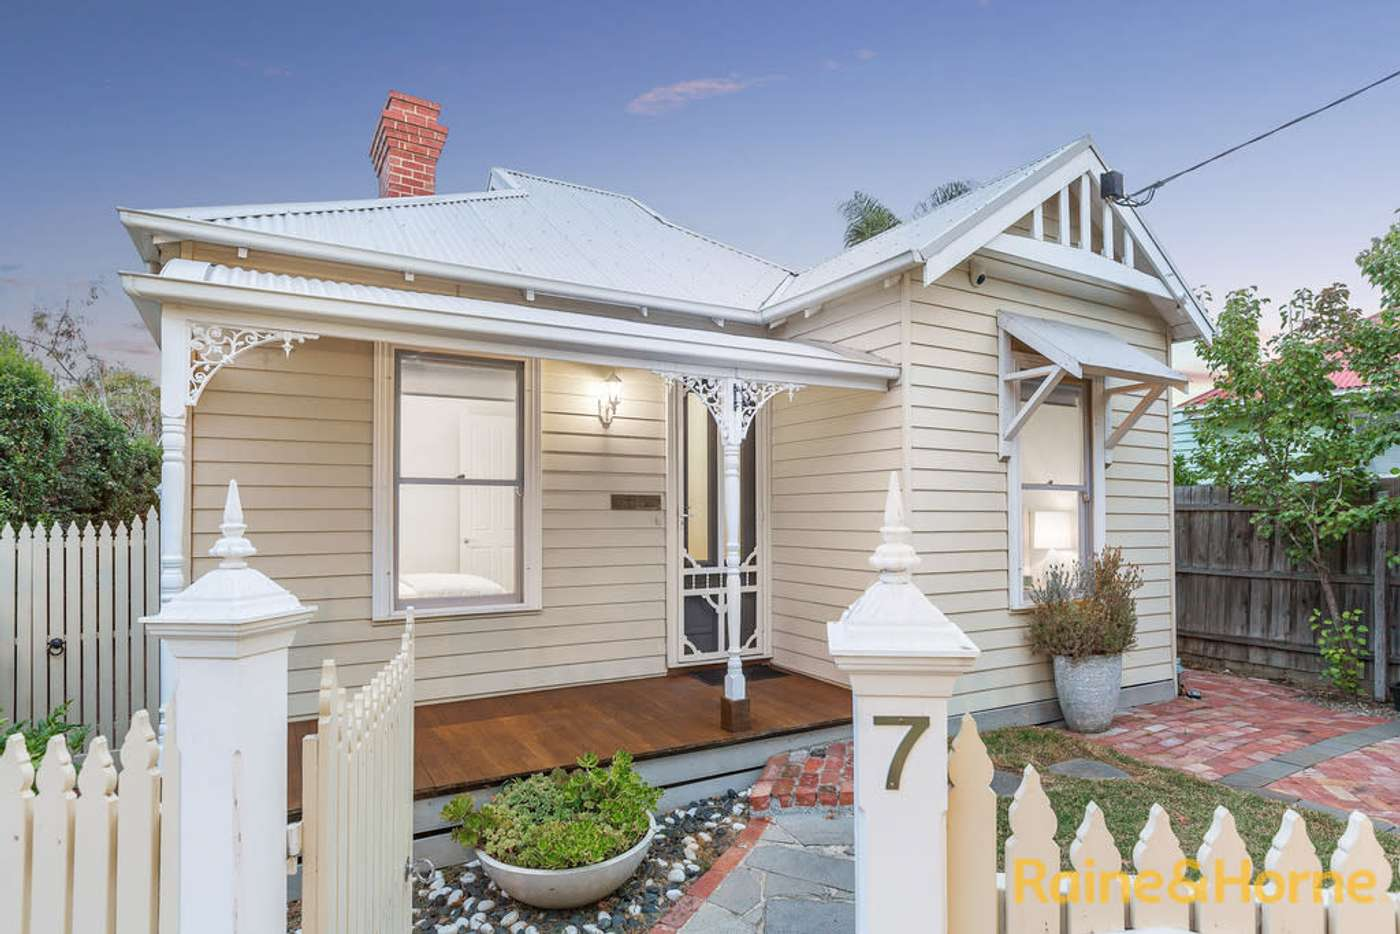 Main view of Homely house listing, 7 Paine St, Newport VIC 3015